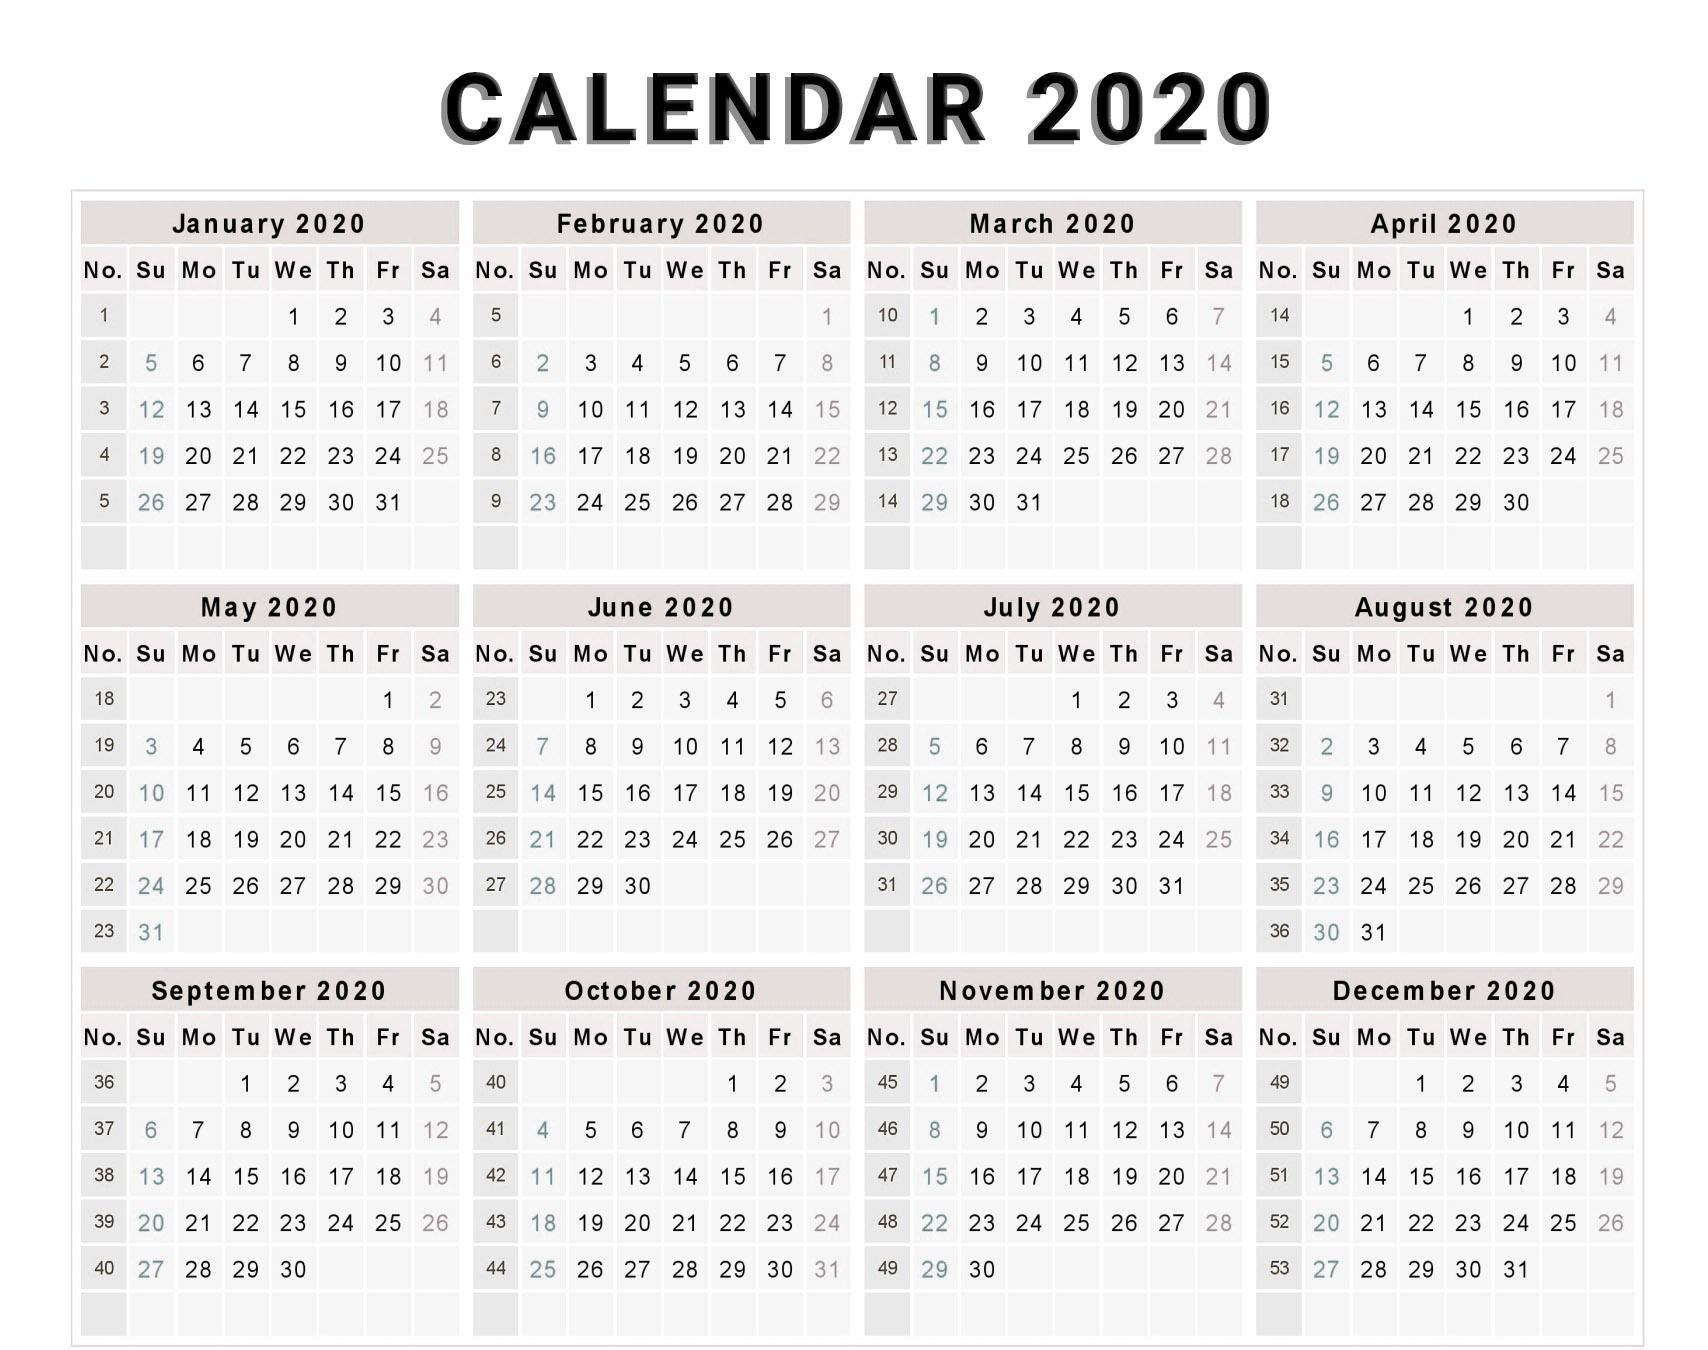 Calendar 2020 Free Template With Weeks | Free Calendar